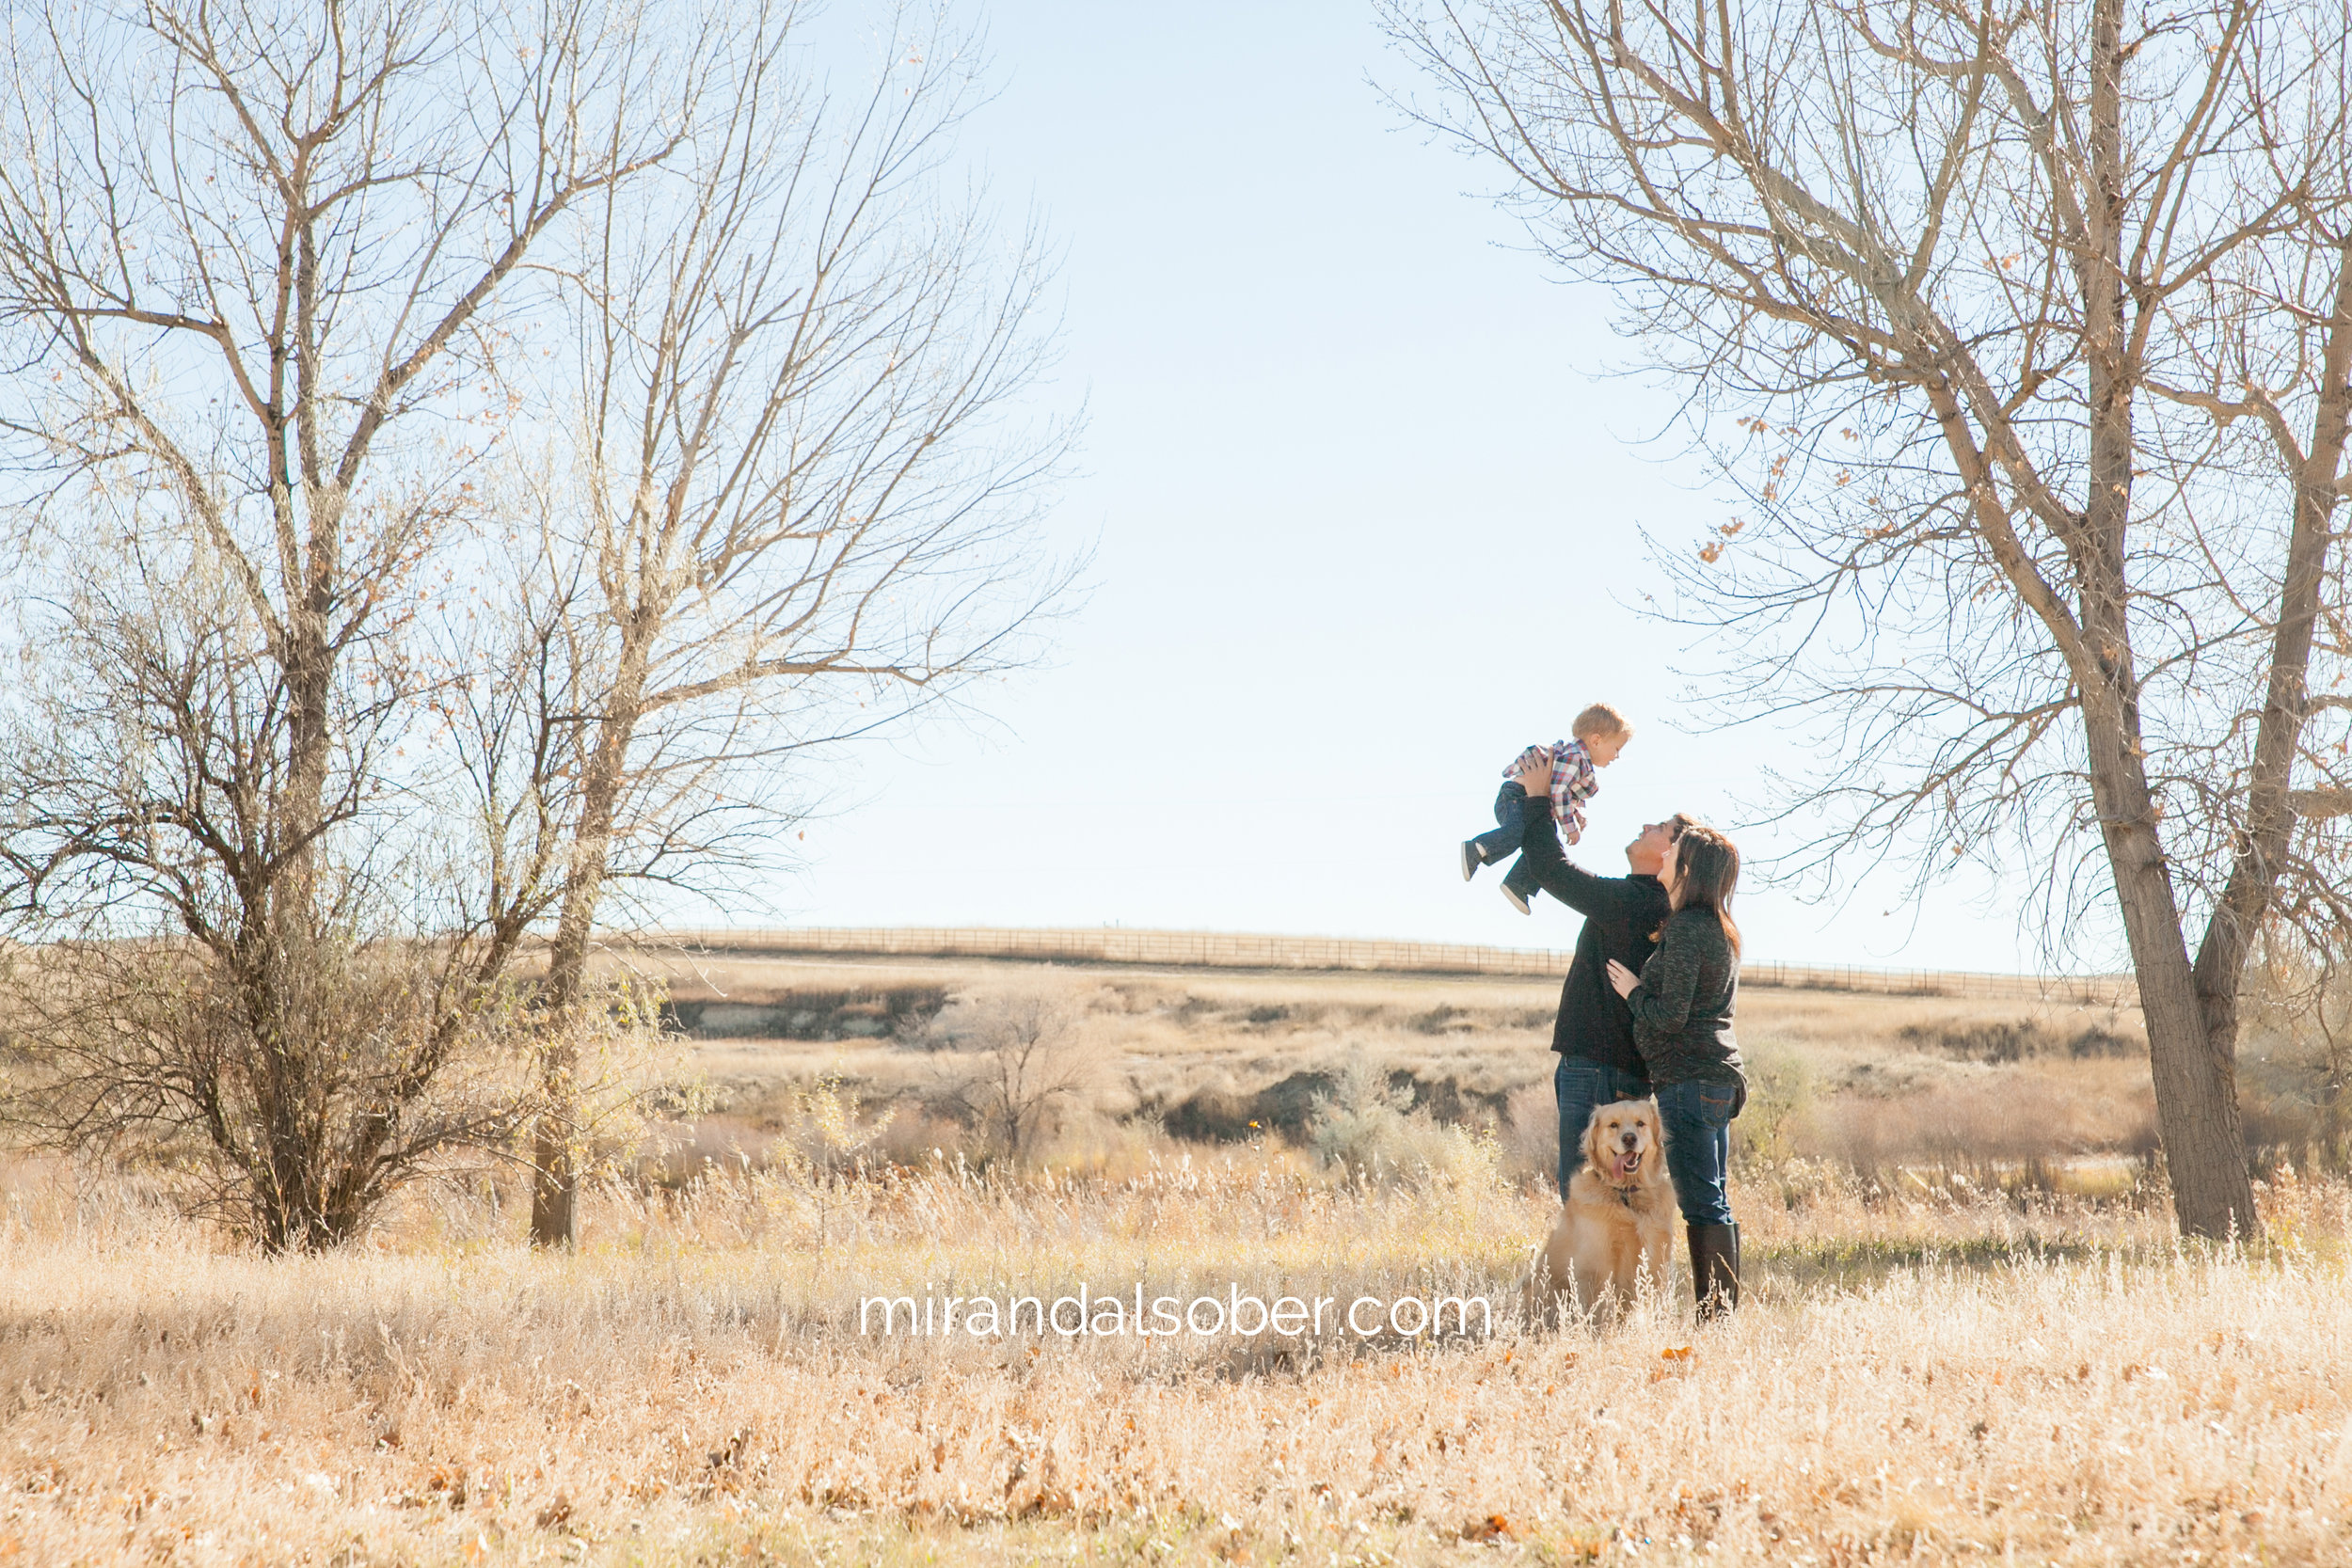 Northern Colorado photographer, Miranda L. Sober Photography